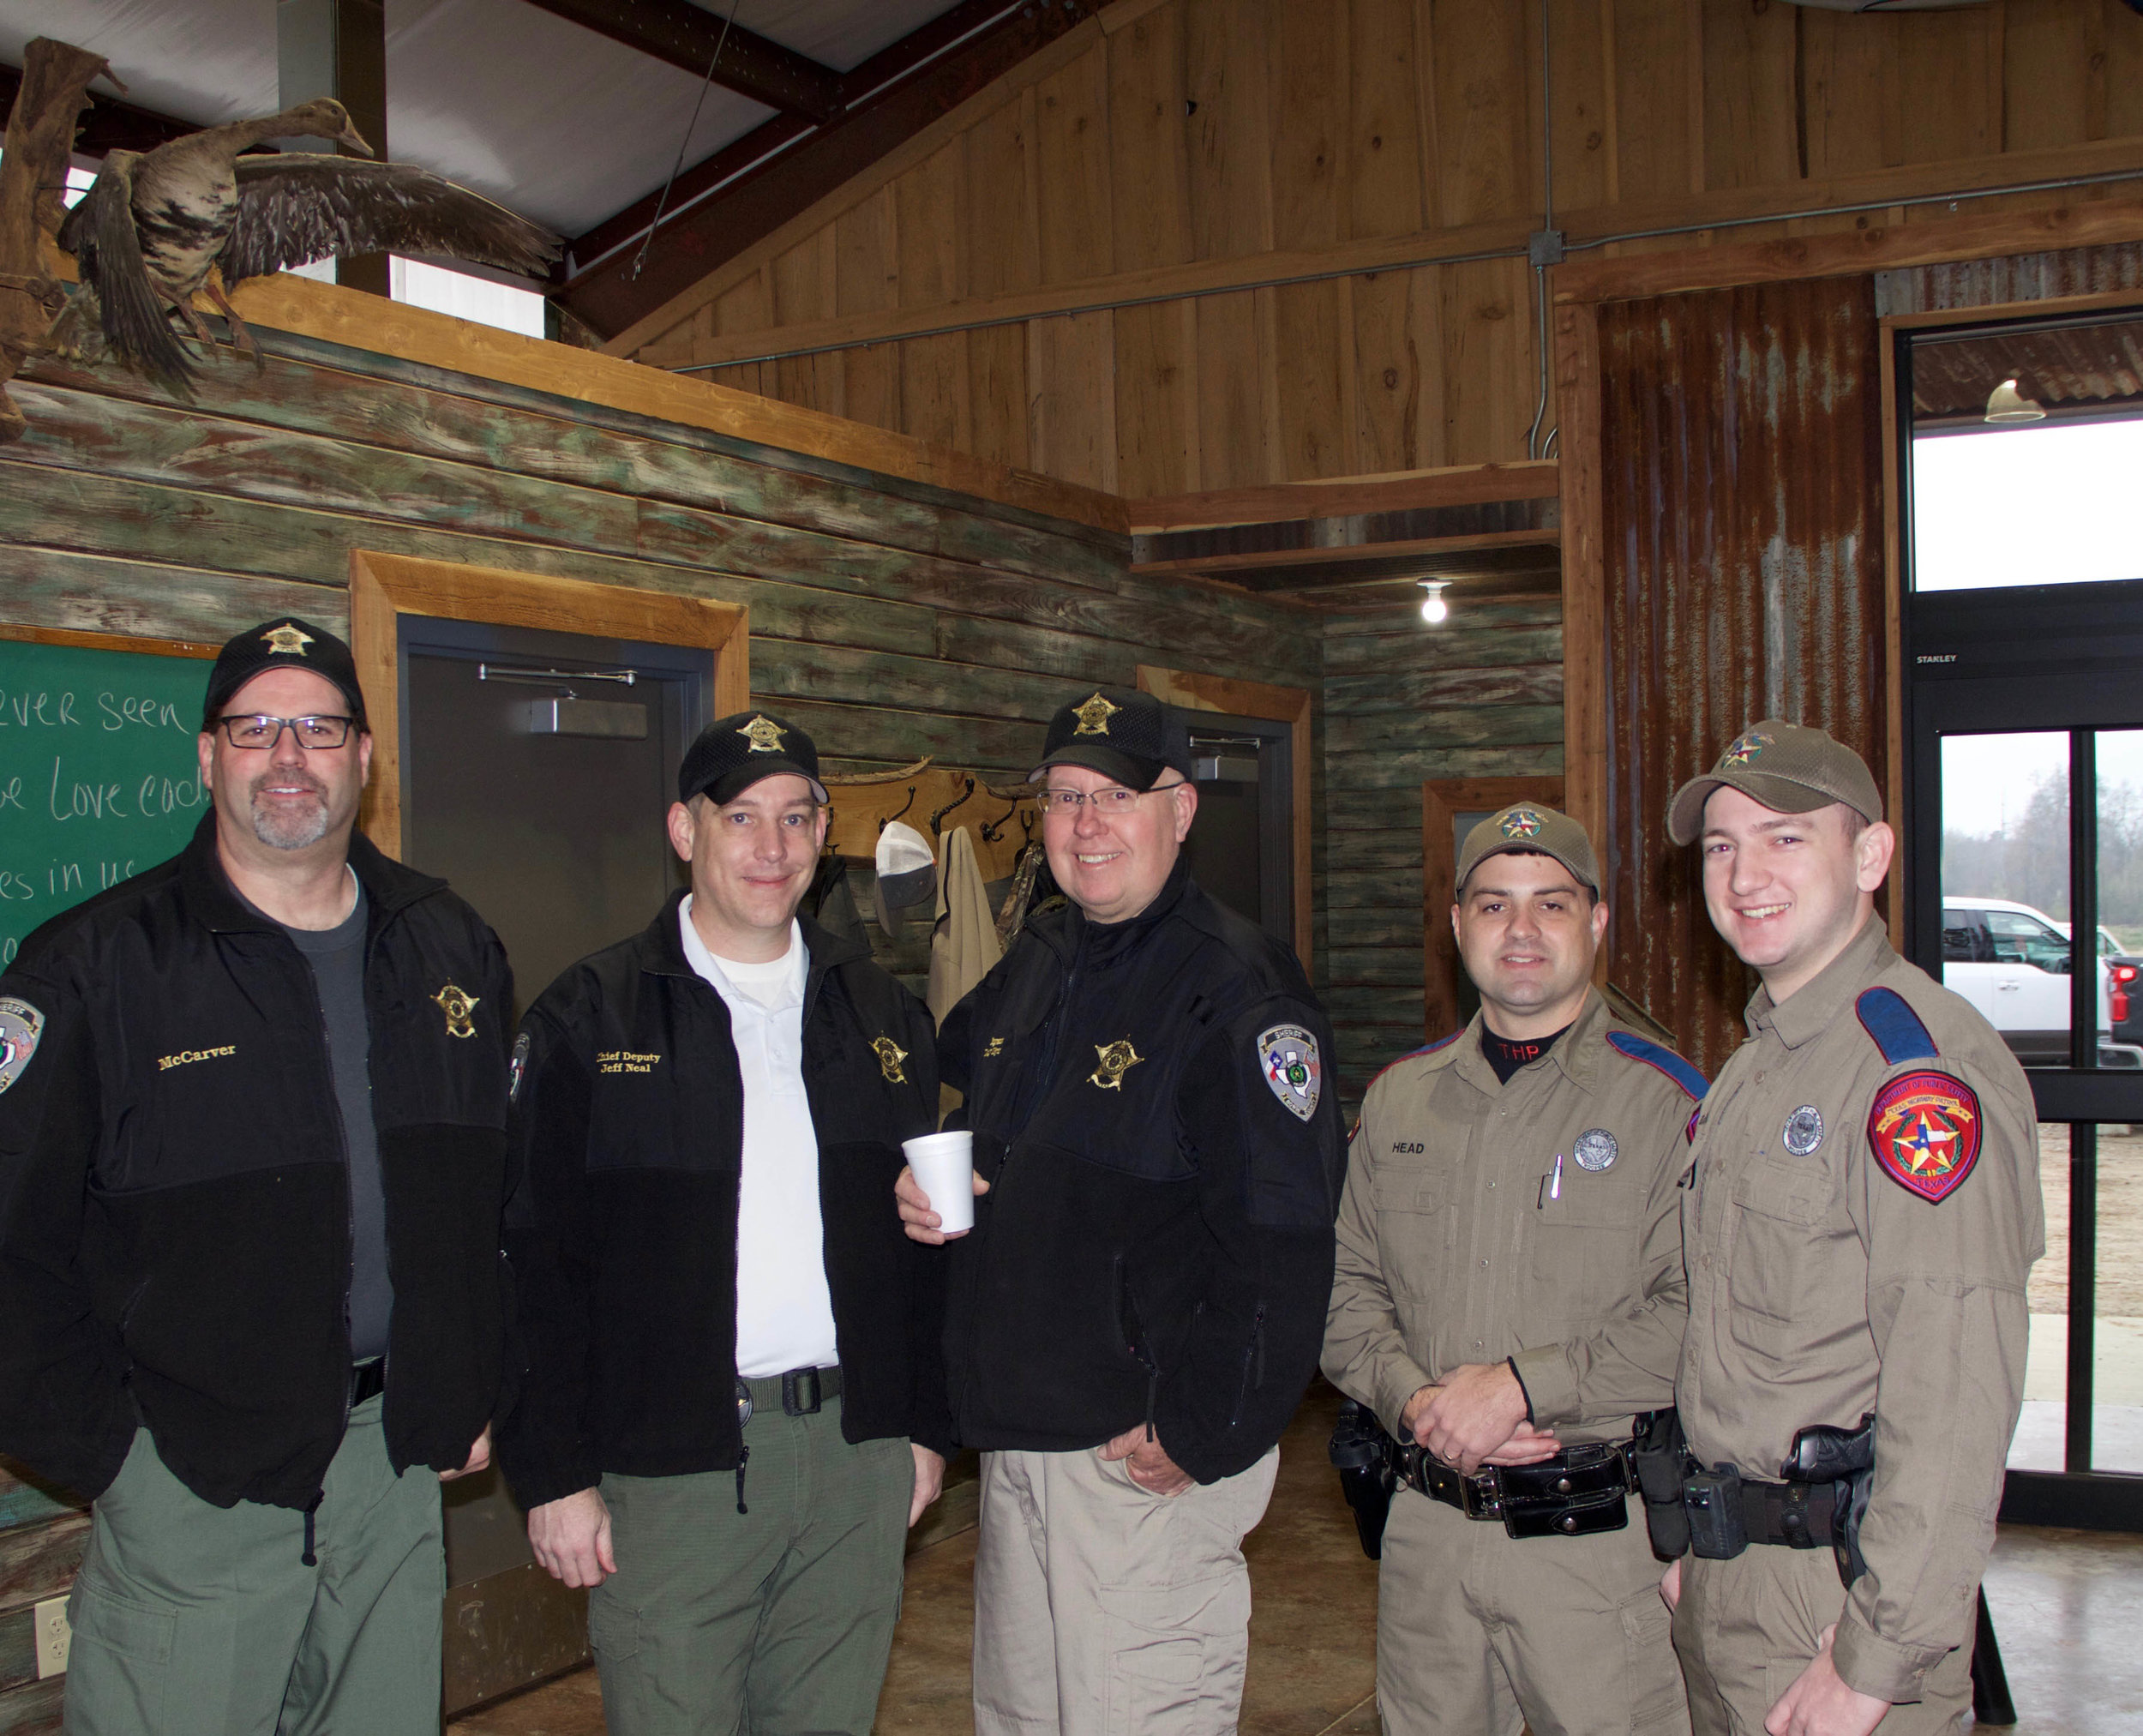 BCSO Captain Robby McCarver, BCSO Chief Deputy Jeff Neal, BCSO Sergeant Danny Meyer, Texas Department of Public Safety Trooper Nathan Head and Trooper Zack Baker